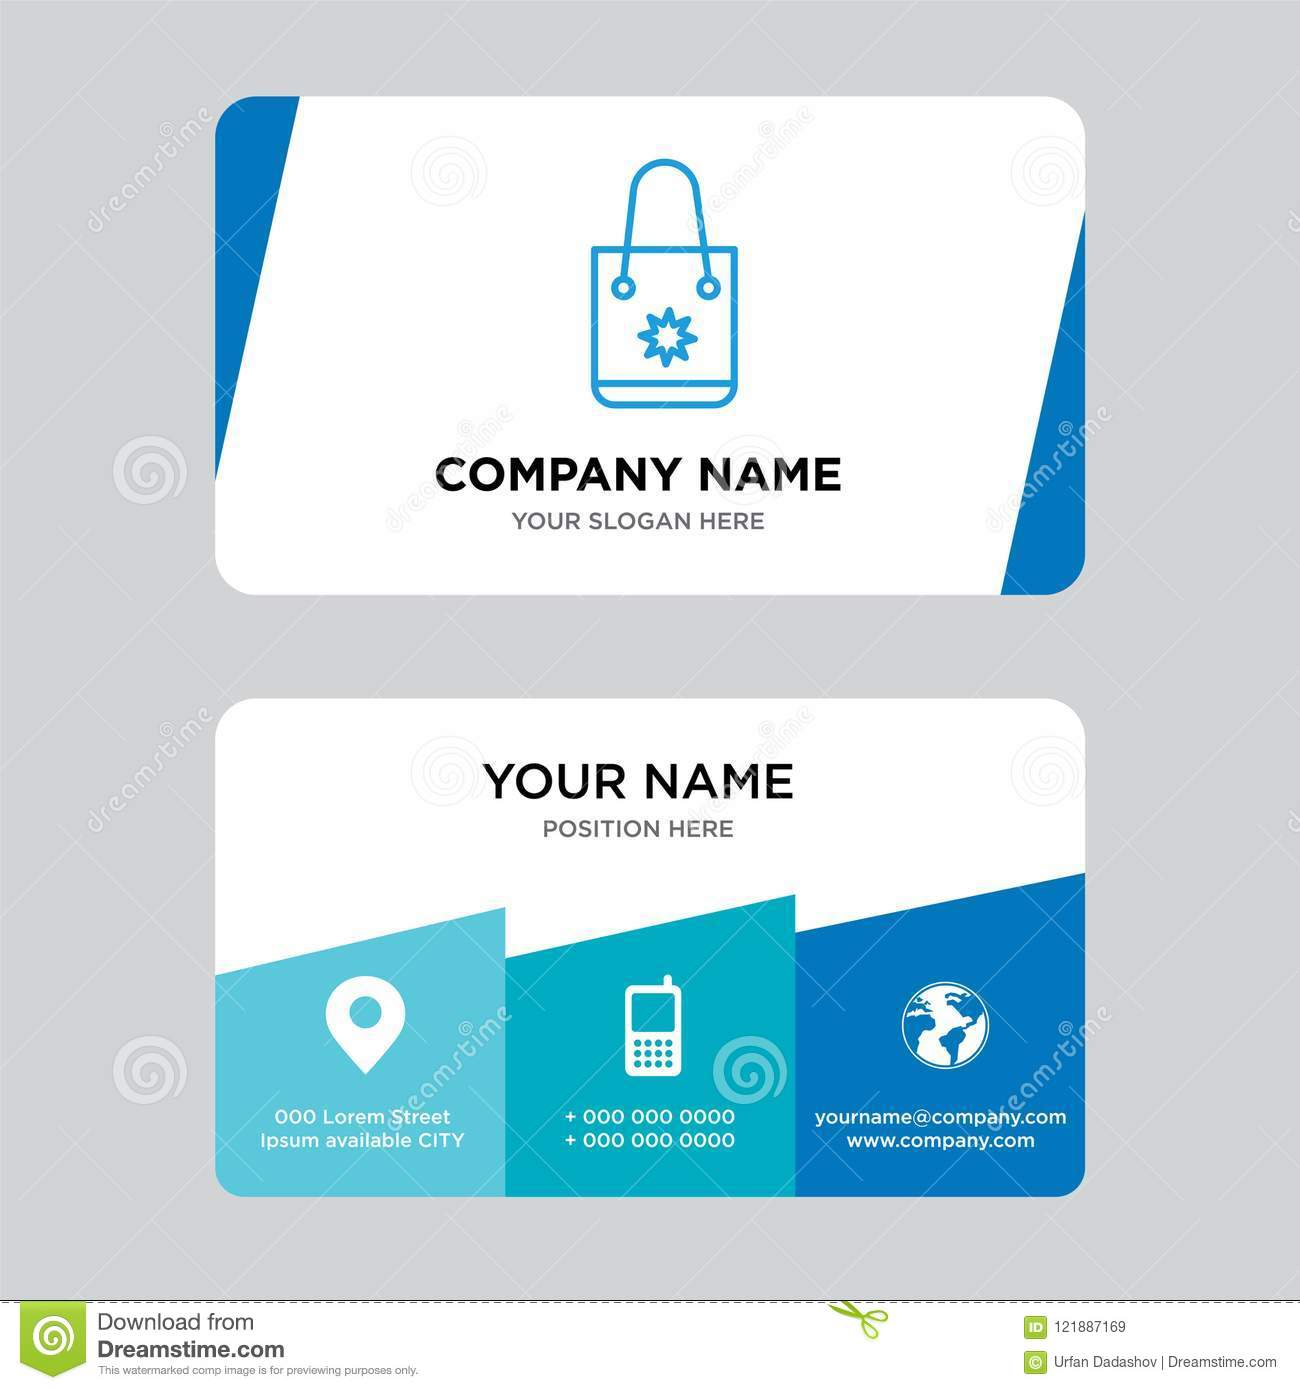 Tote Bag Business Card Design Template Visiting For Your Company